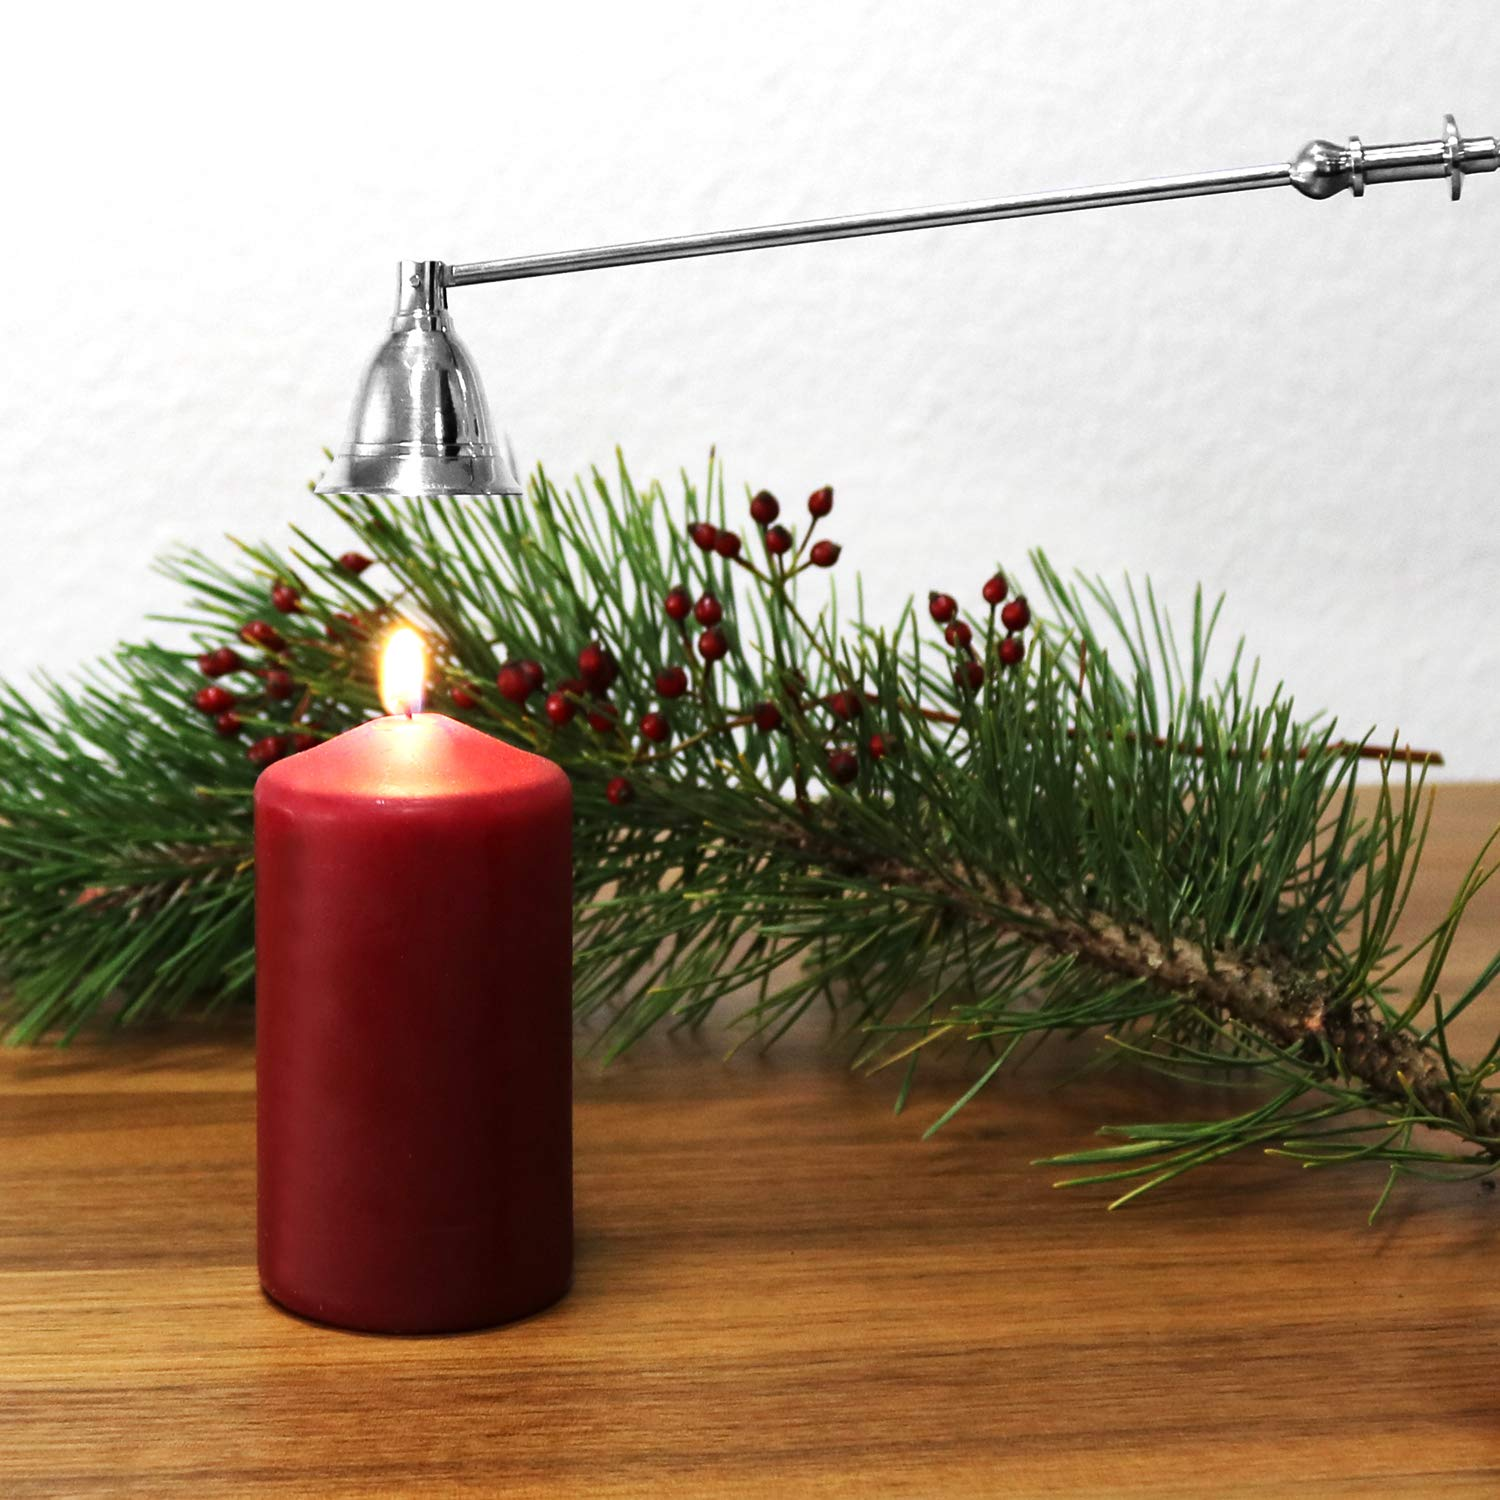 wick extinguishers silver plated 02 - St/ück - silberfarben com-four/® Set of 2 candle extinguishers made of stainless steel length 30 cm